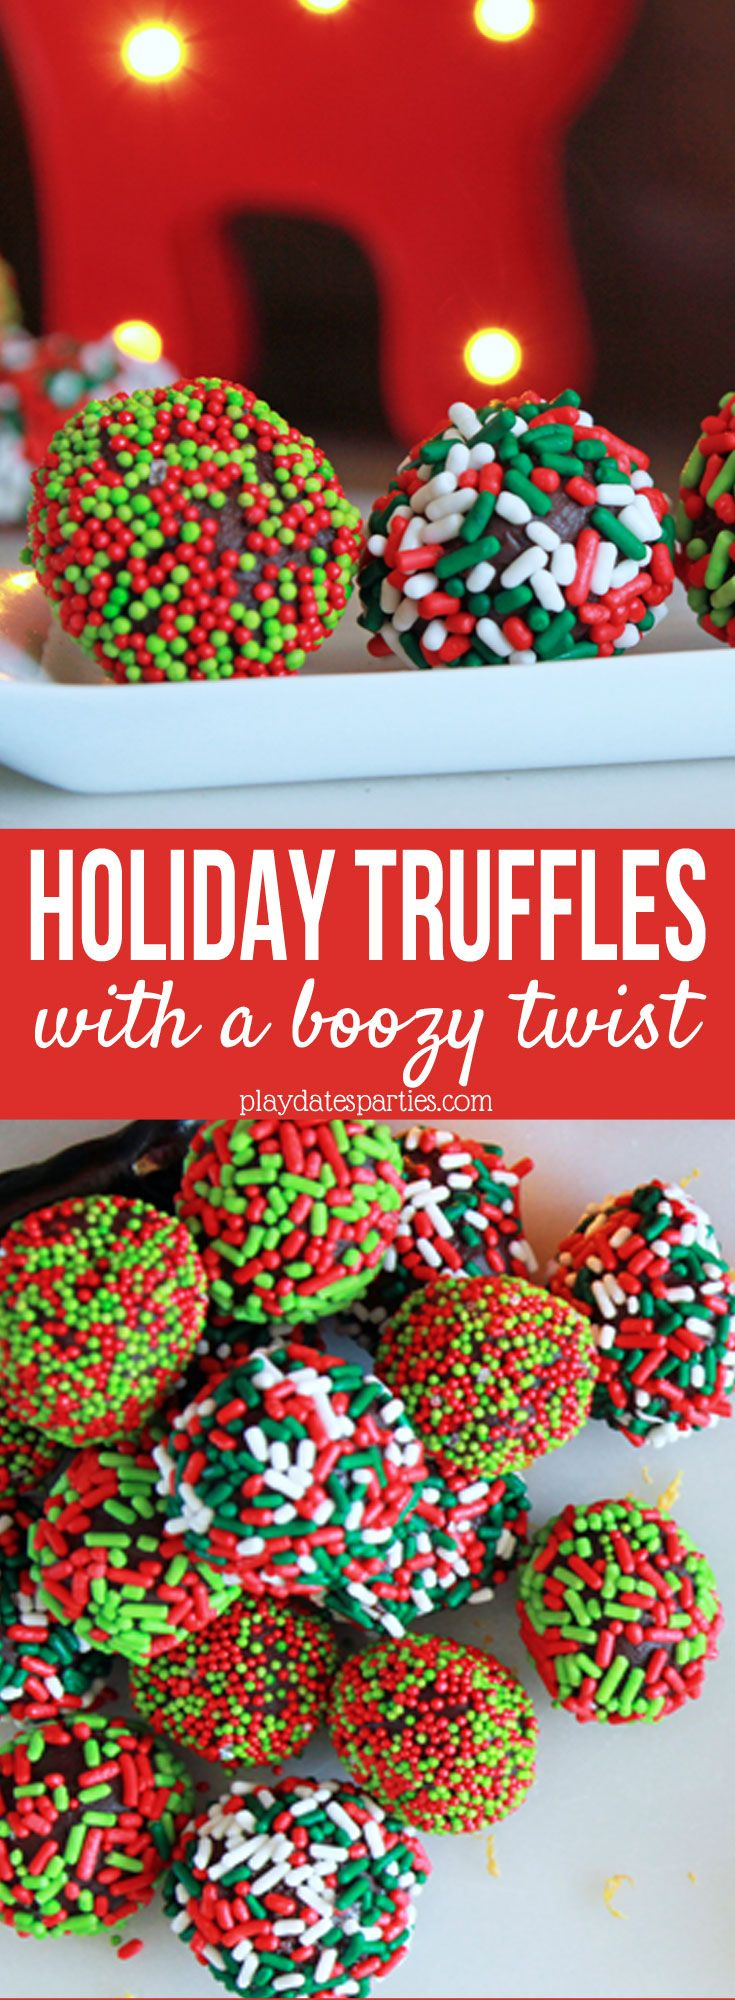 Learn this chef secret for incredibly smooth and delicious #chocolate truffles. And then add a few twists to make them PERFECT for your #holiday celebrations! http://playdatesparties.com/12-days-holiday-candy-holiday-truffles-boozy-twist/